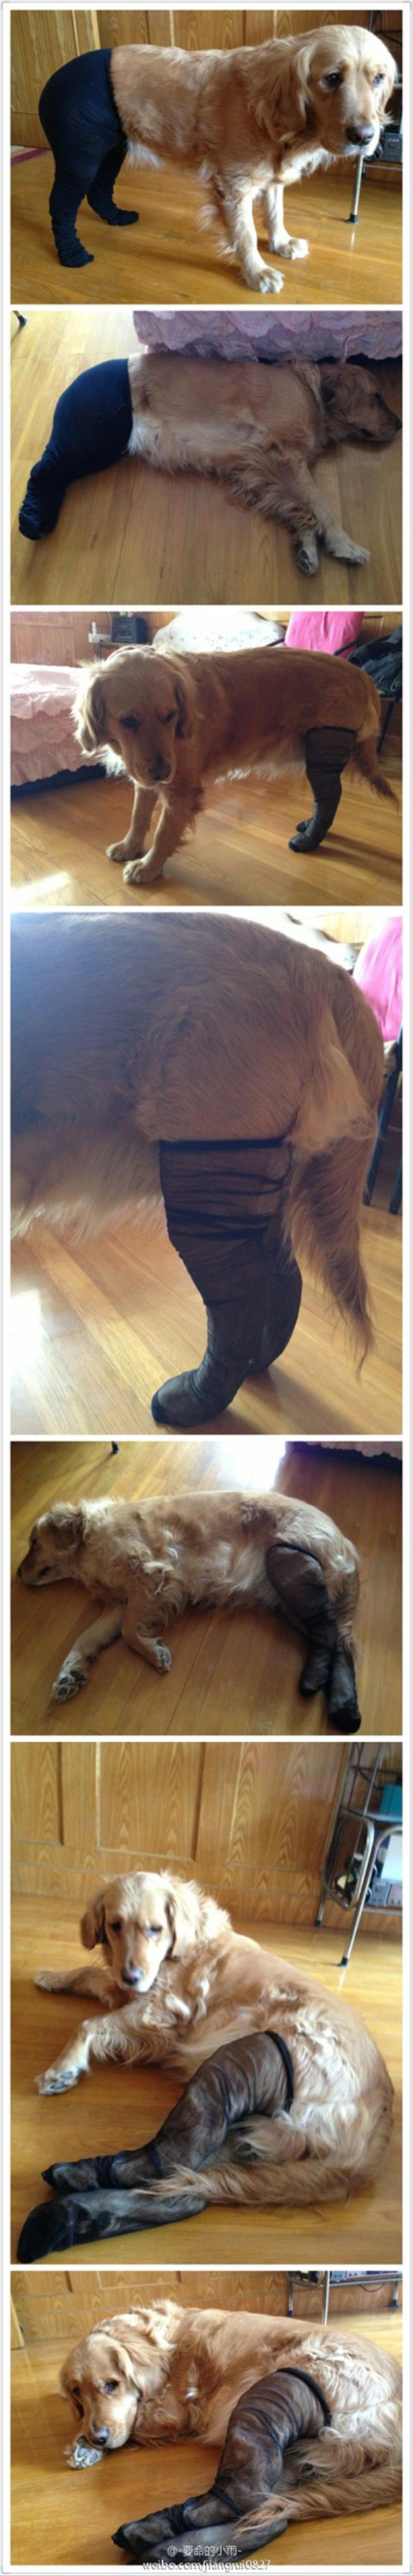 dogs wearing pantyhose meme (4)